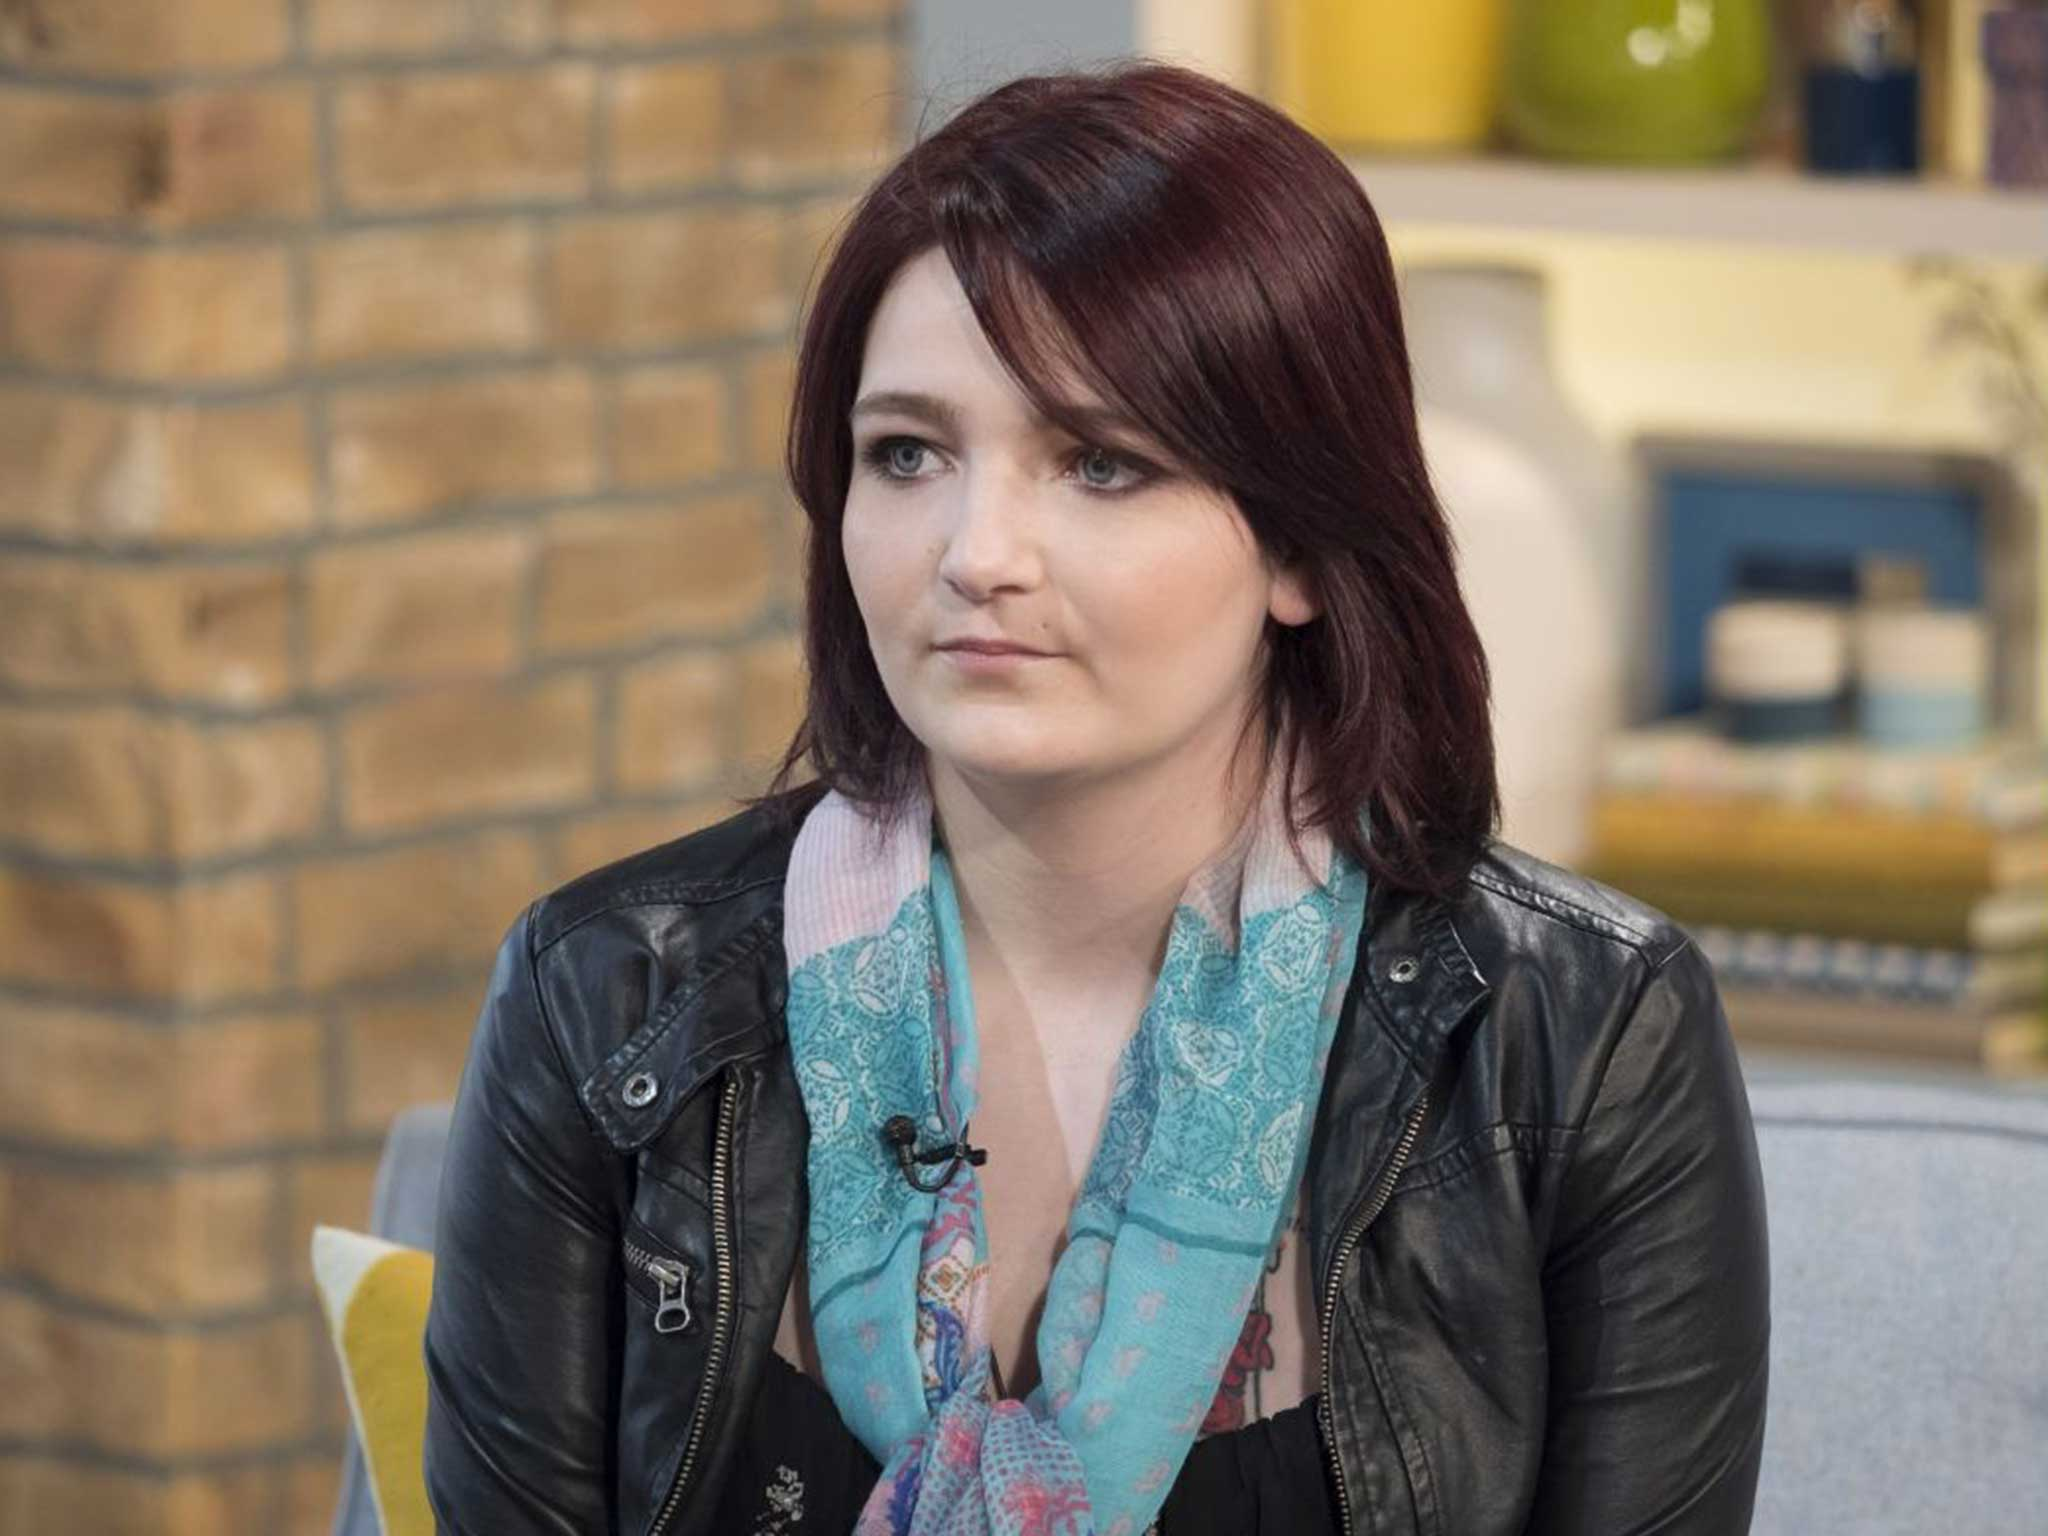 woman raped by her brother at 12 asks her daughter for 'forgiveness